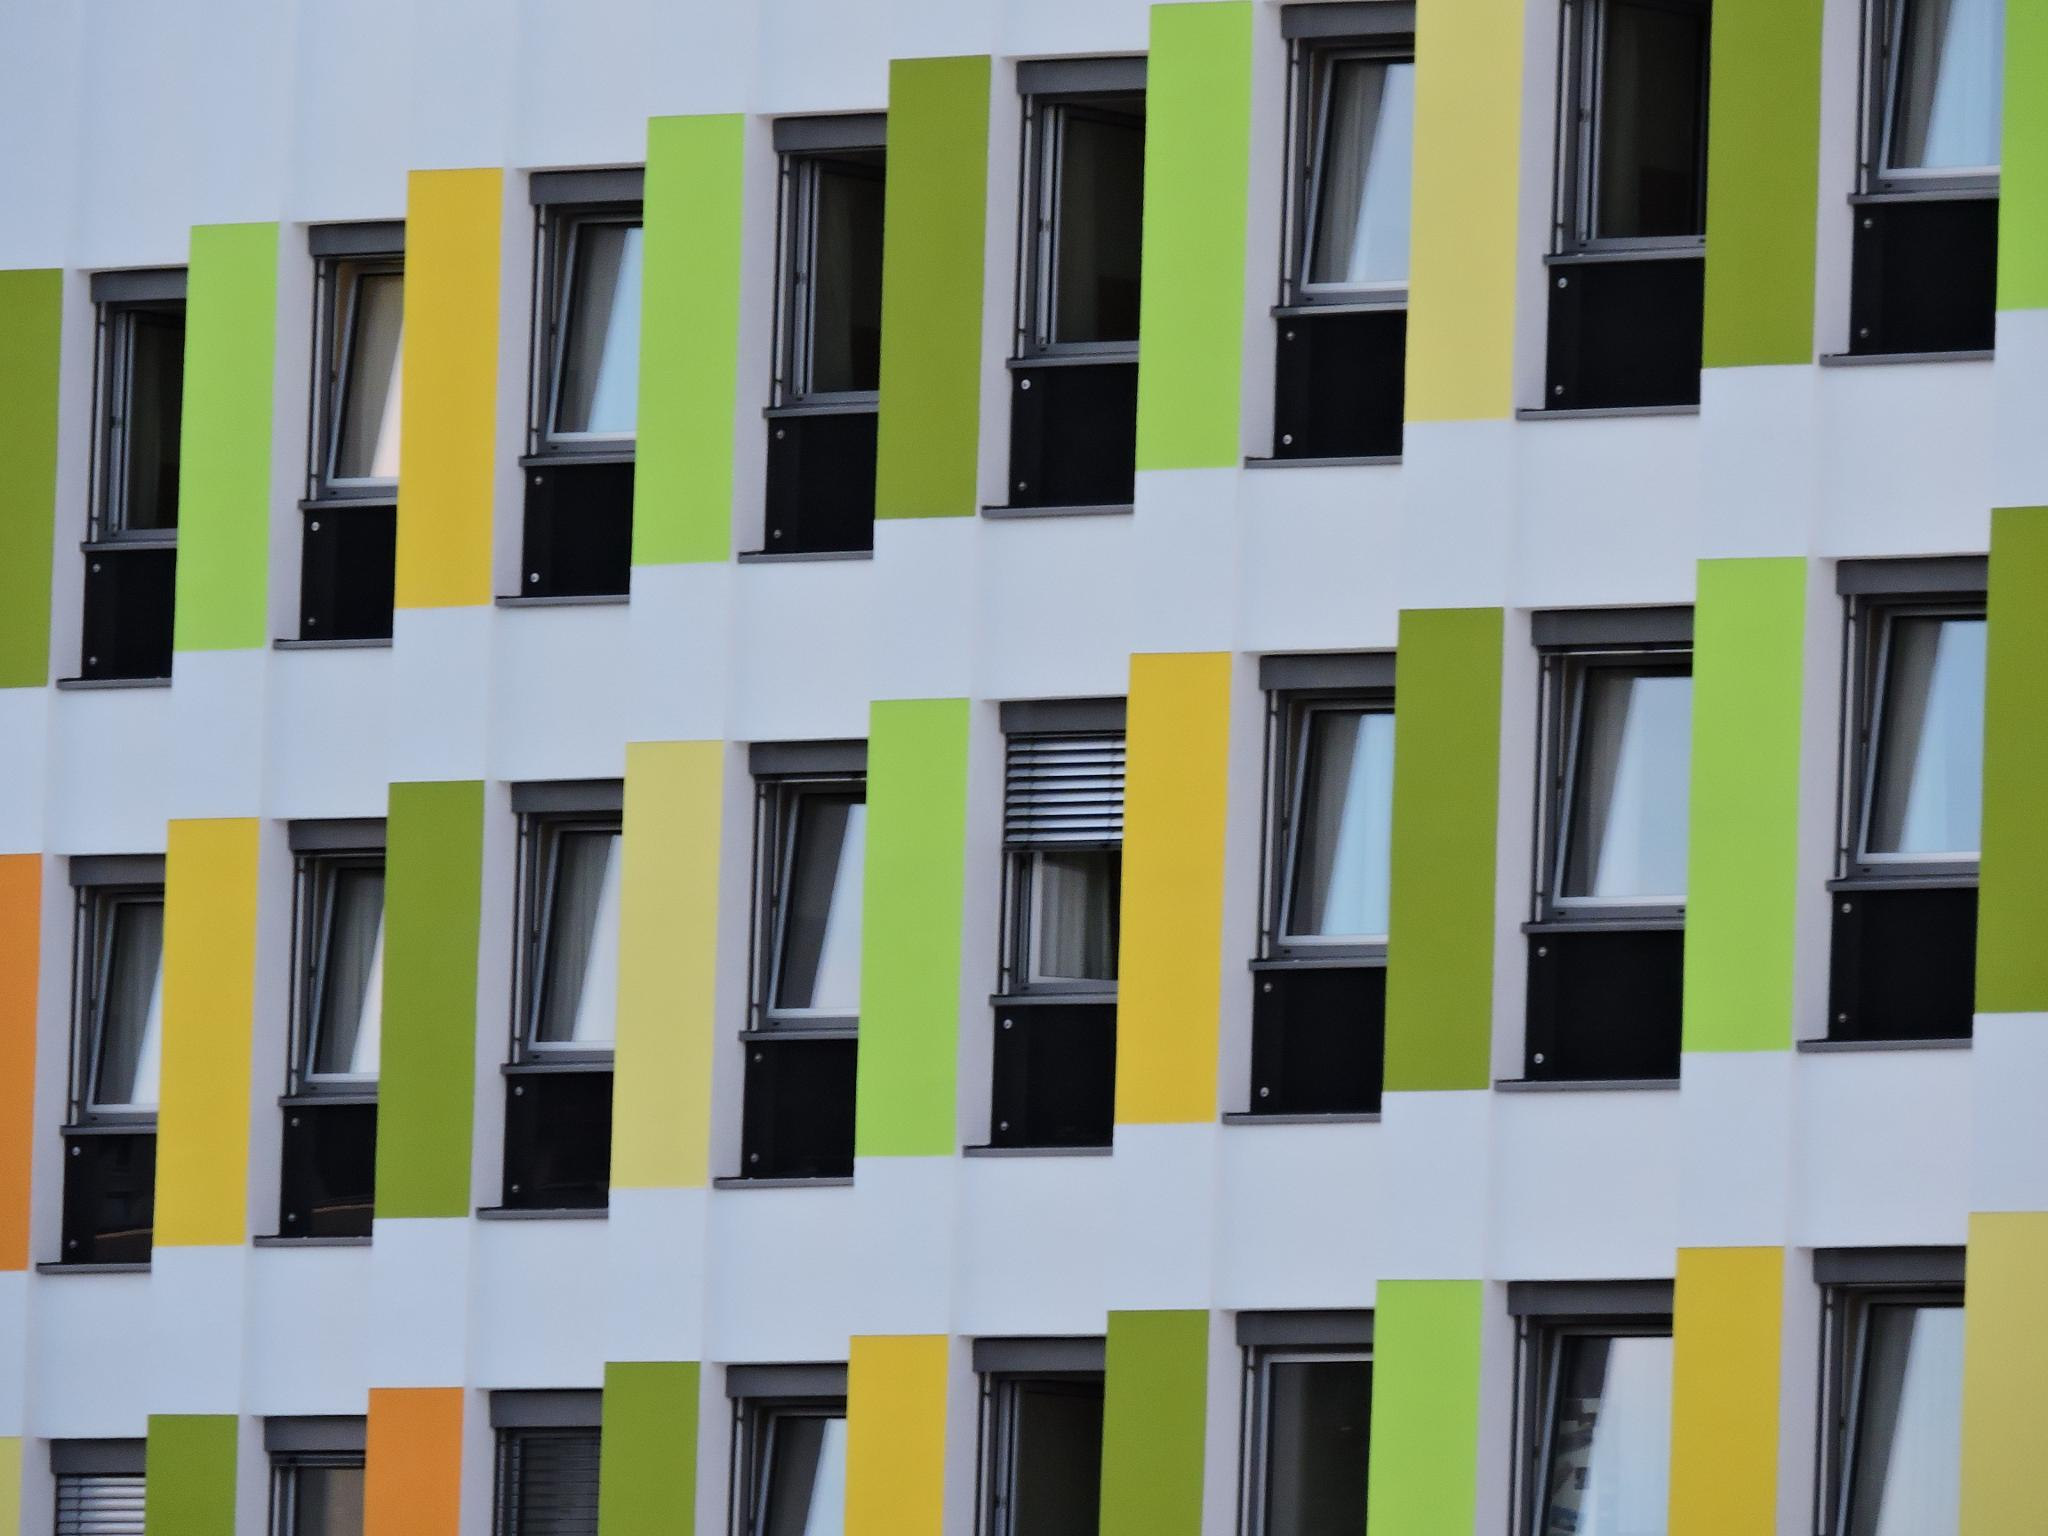 Colorful Fassade of a modern hospital. by Oliver Brecht